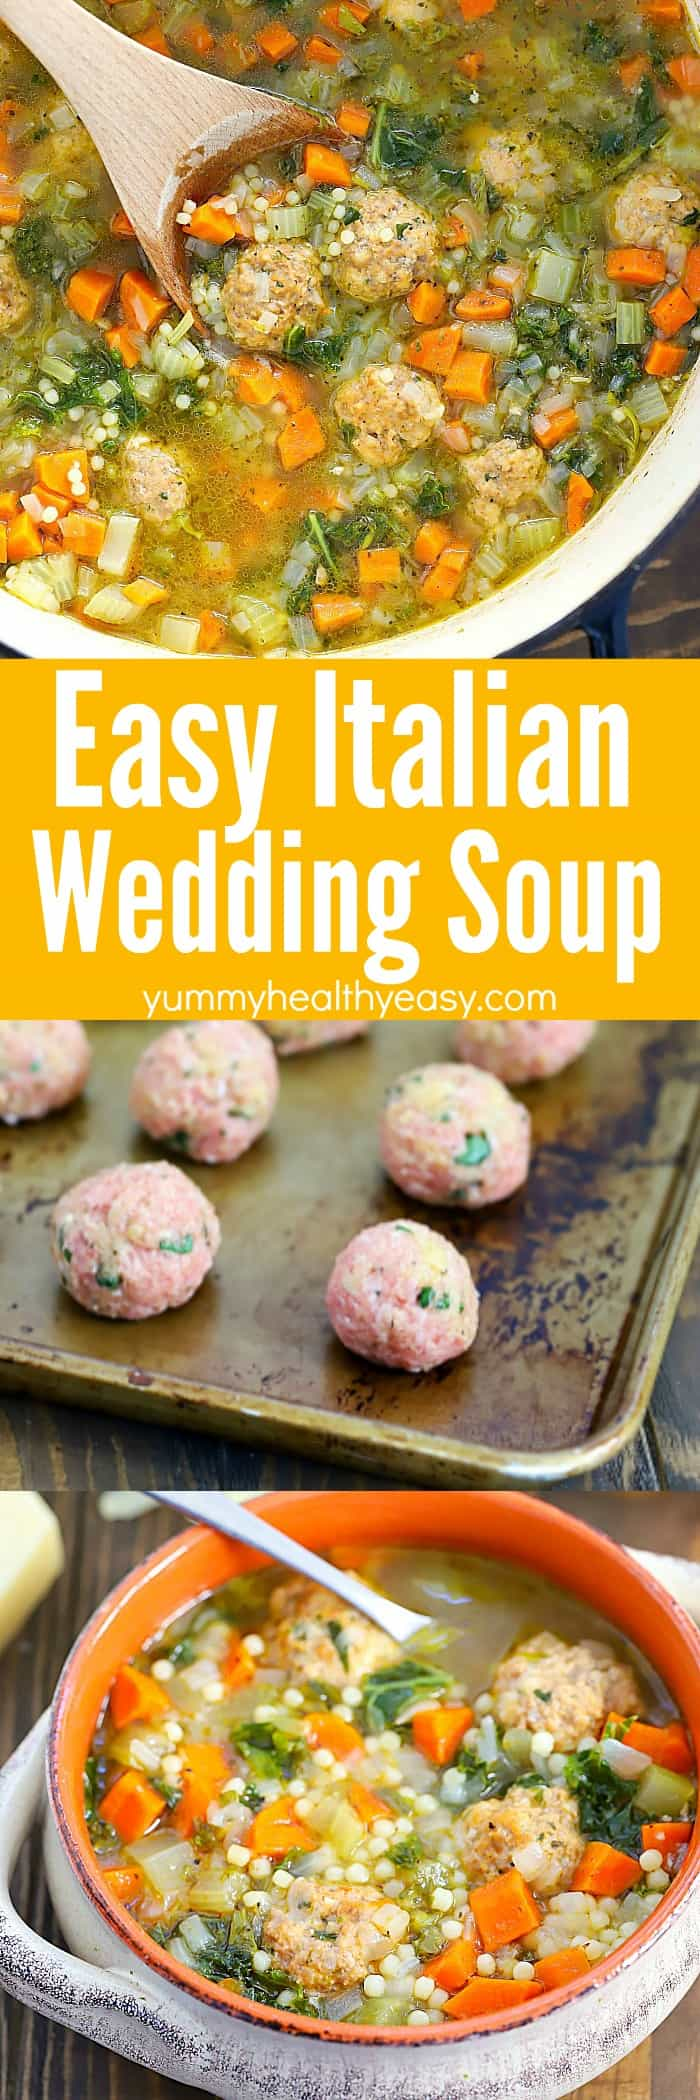 Looking for a yummy soup recipe that's easy to make? this Italian Wedding Soup Recipe is the one you need! It's a one-pot, healthy, filling, delicious soup that's so easy - anyone can make it! 